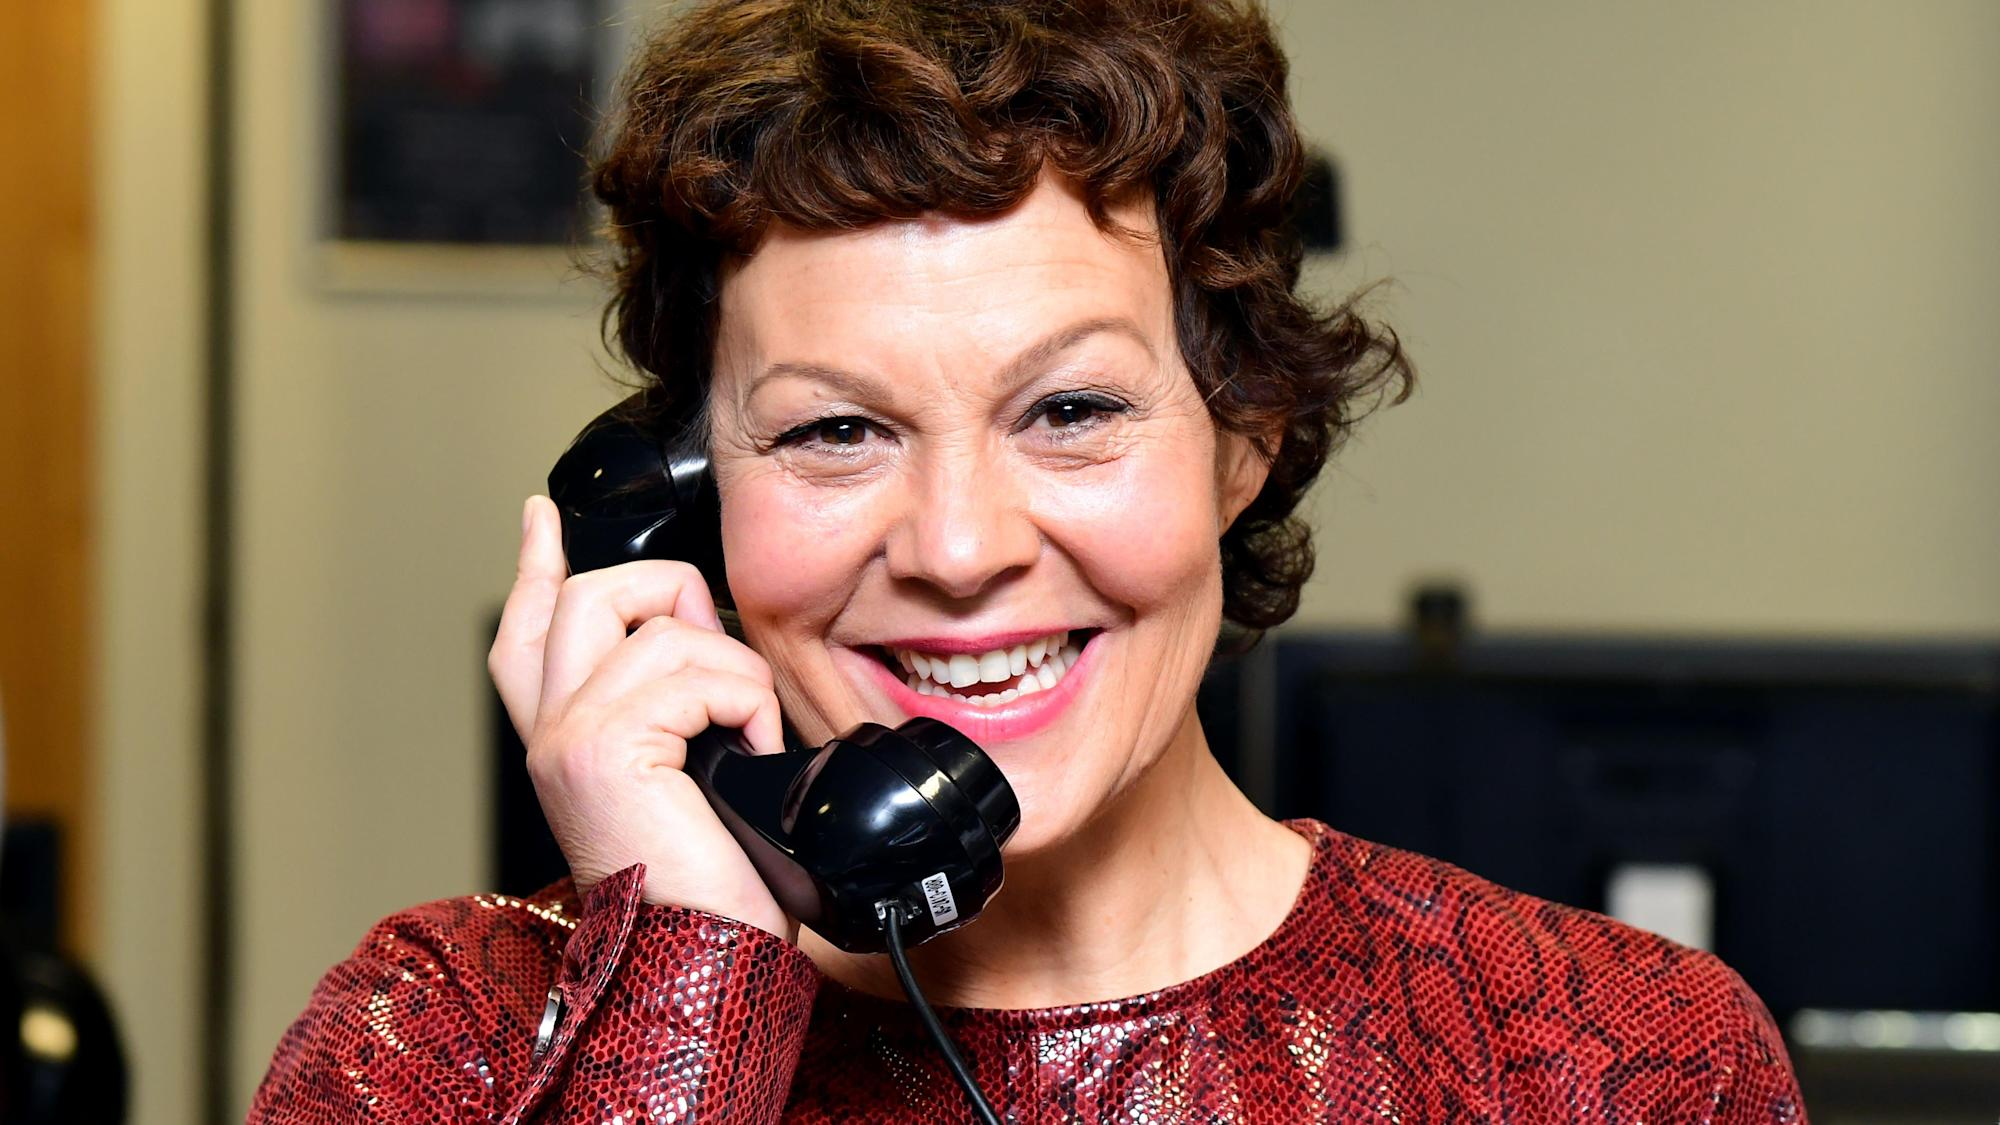 In Pictures: Remembering Helen McCrory